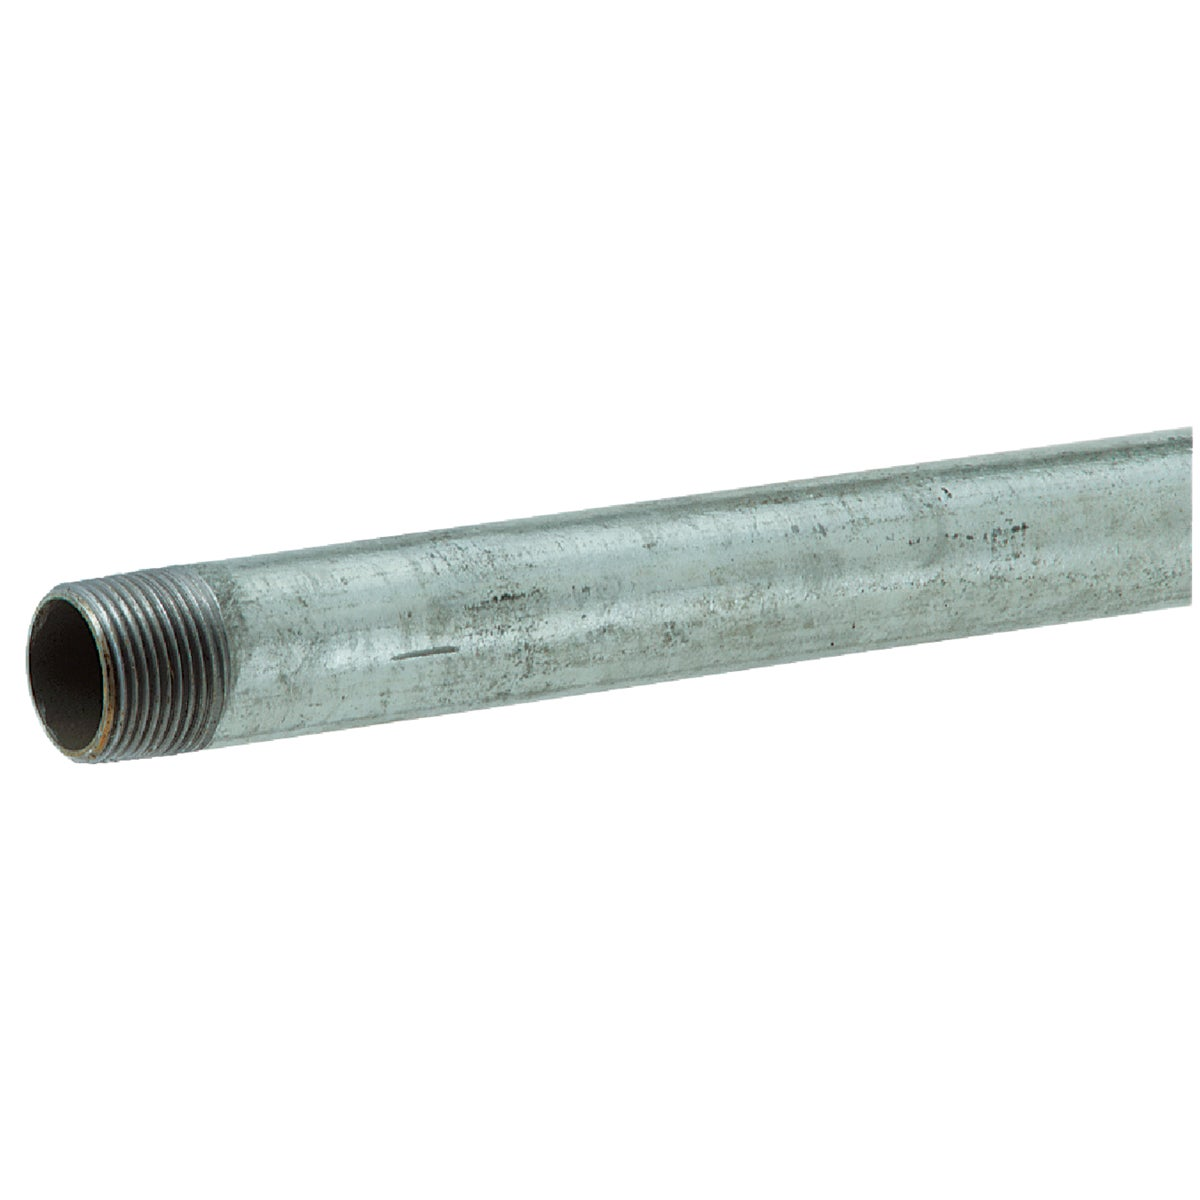 1X36 GALV RDI-CT PIPE